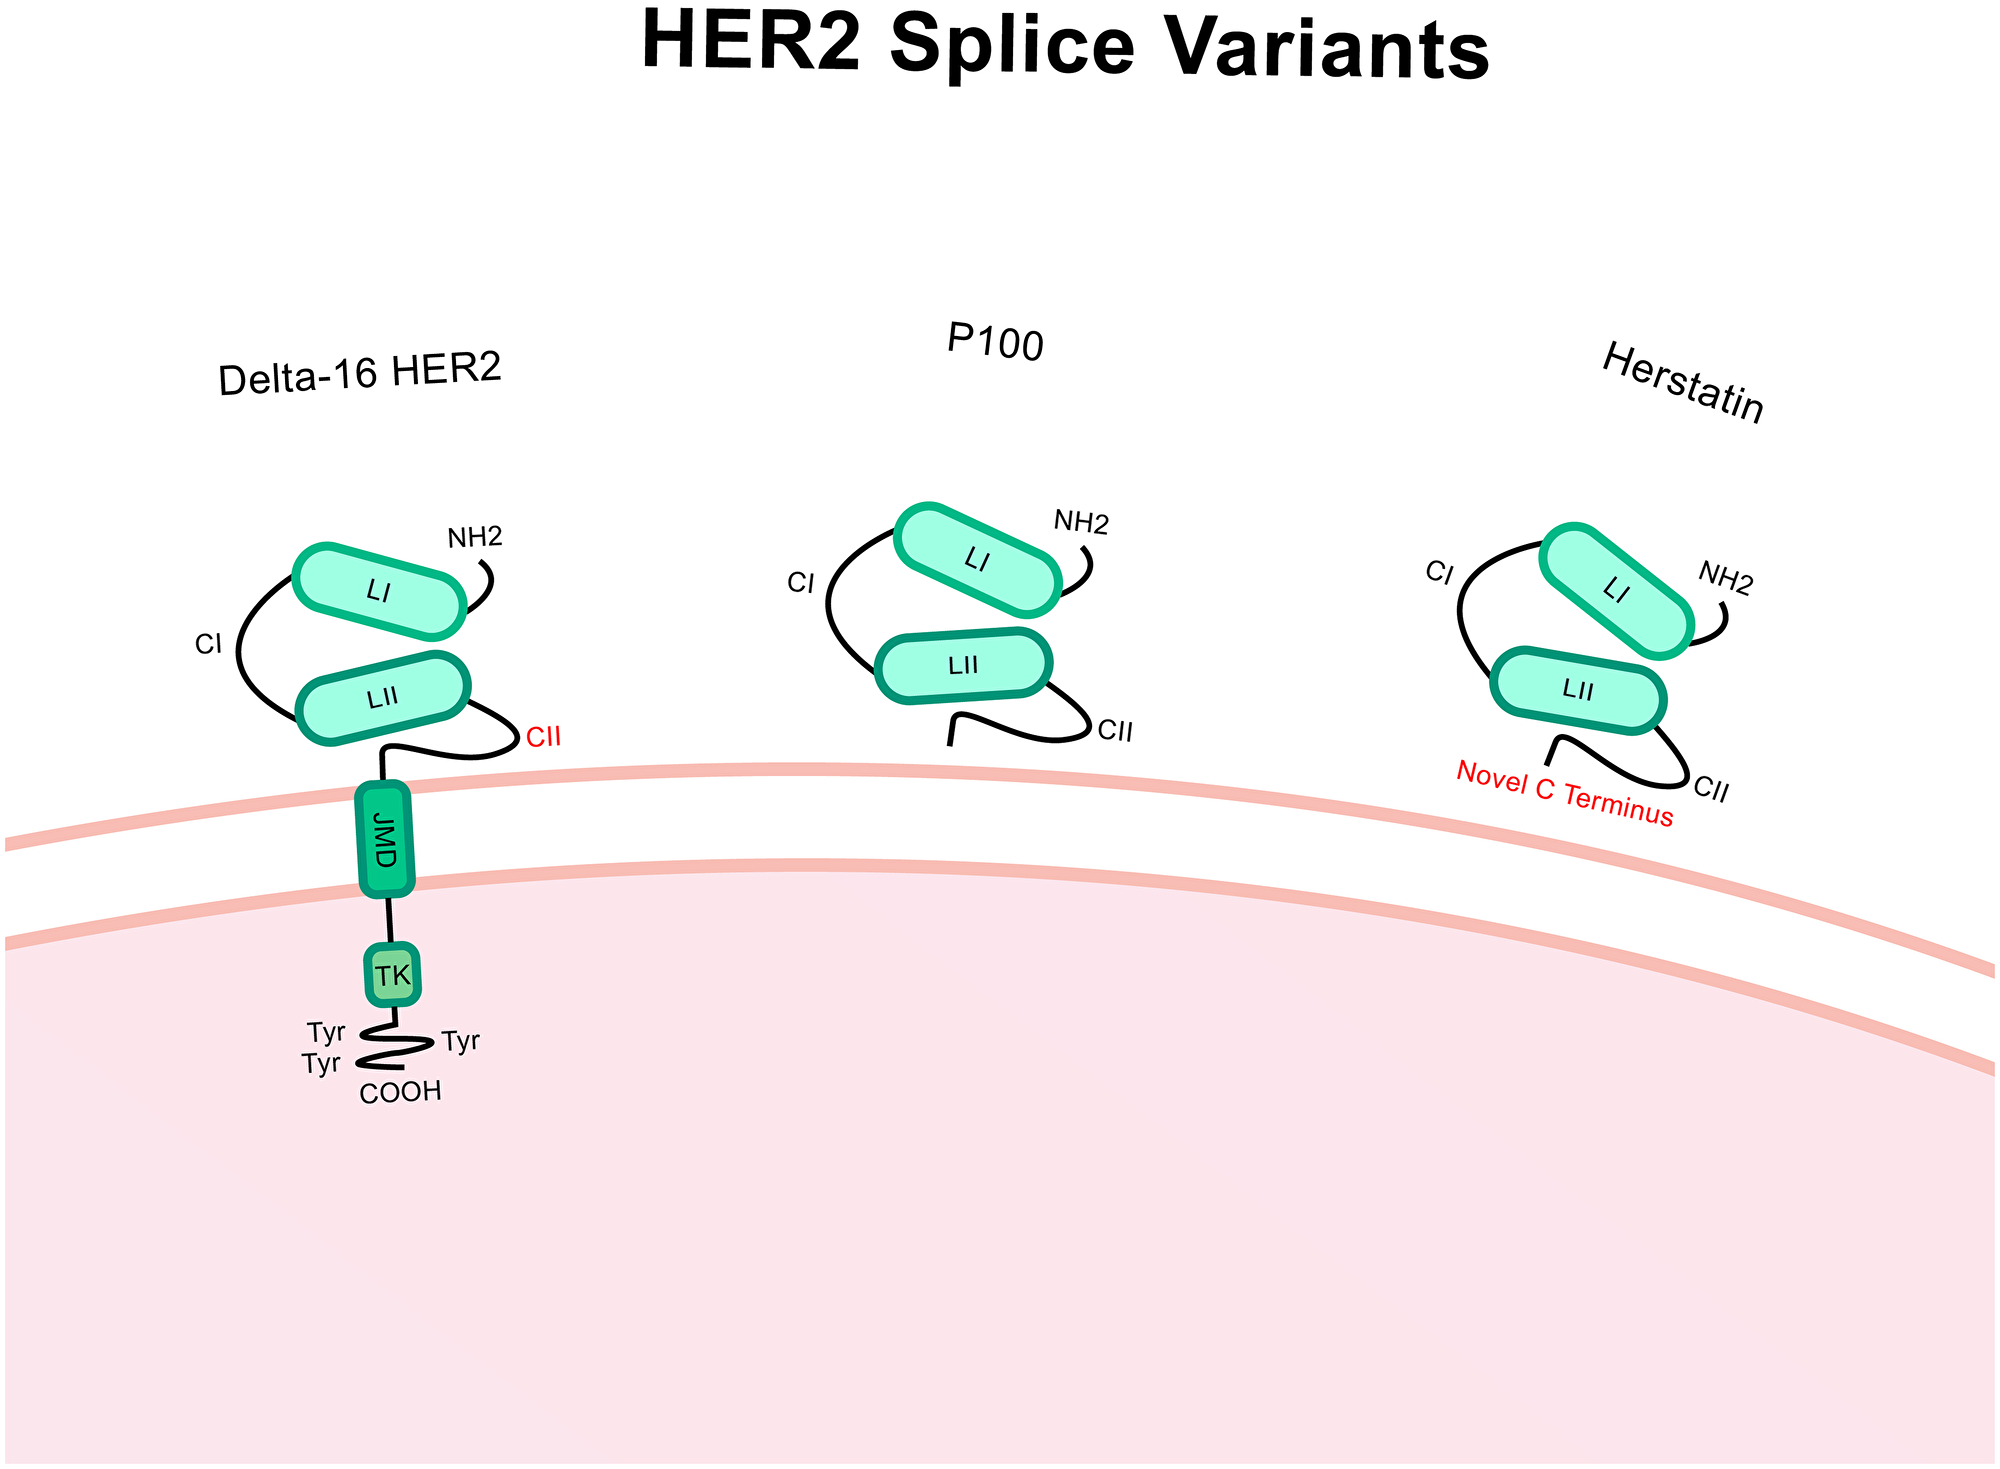 Structure of Δ16-HER2, P100 and herstatin splice variants.